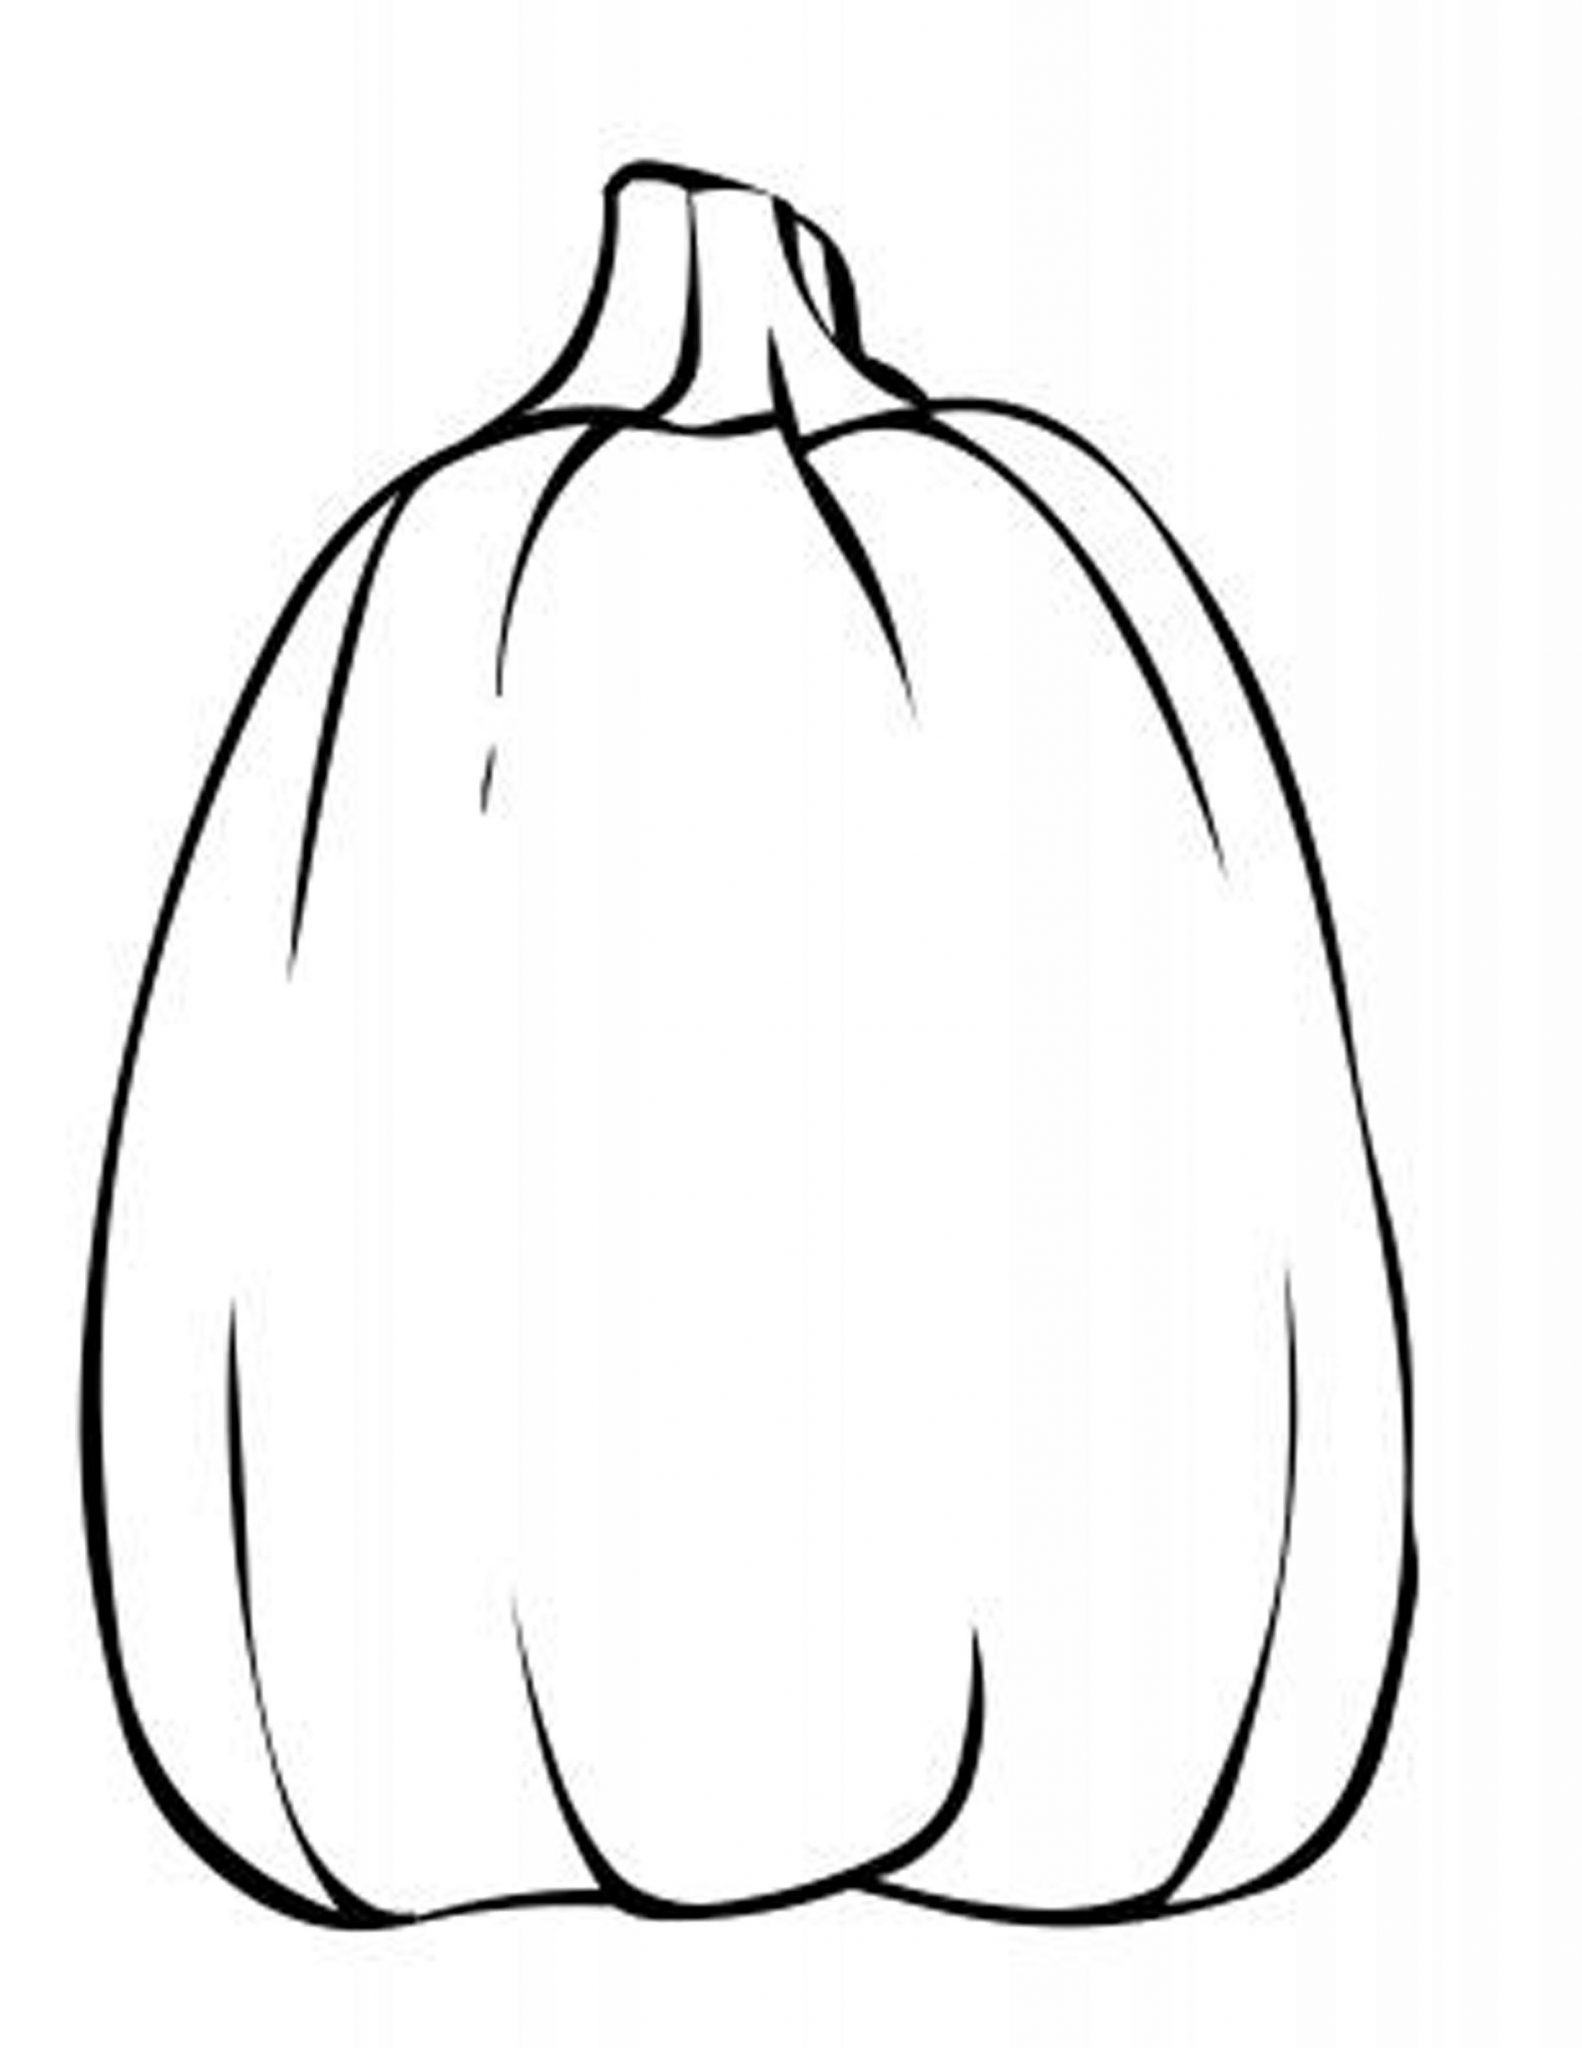 pumkin coloring pages pumpkin coloring pages skip to my lou pumkin pages coloring